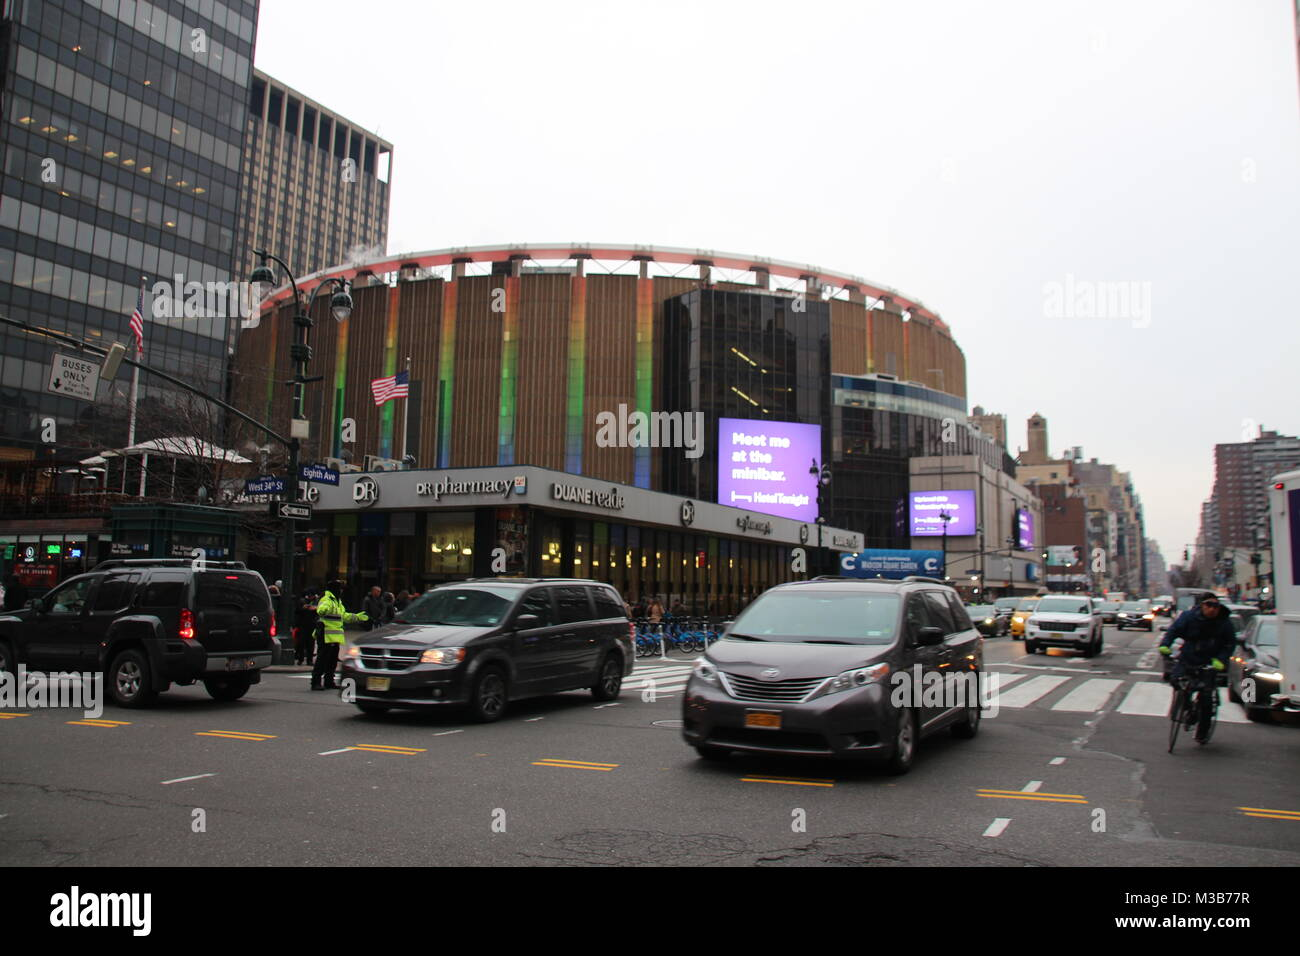 New York, USA. 9th Feb, 2018. Famous multi-purpose venue Madison Square Garden towers over Penn Station in New York, Stock Photo